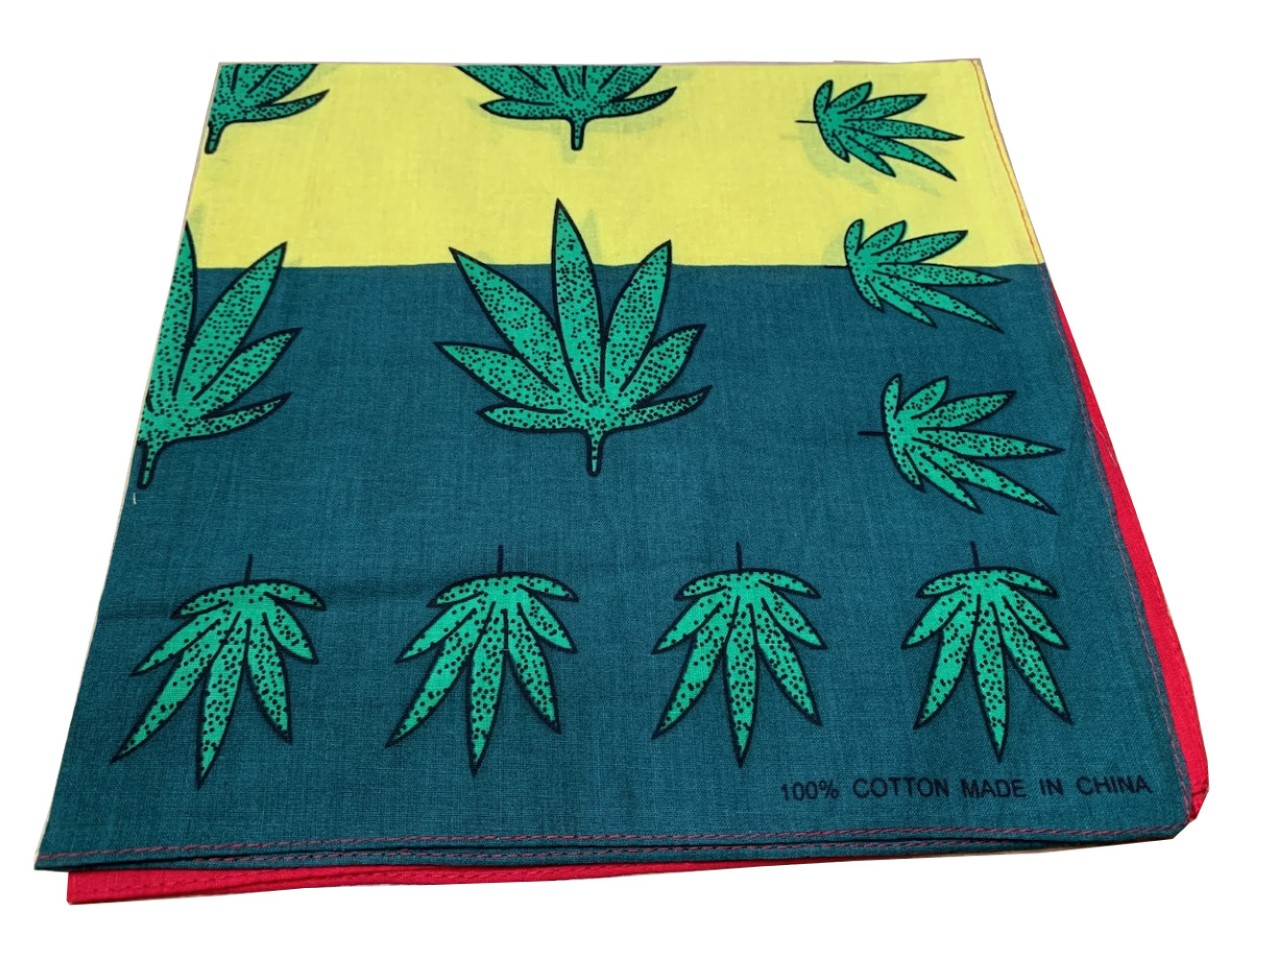 "Marijuana Bandana Red/Yellow 22"" x 22"" - 100% Cotton"